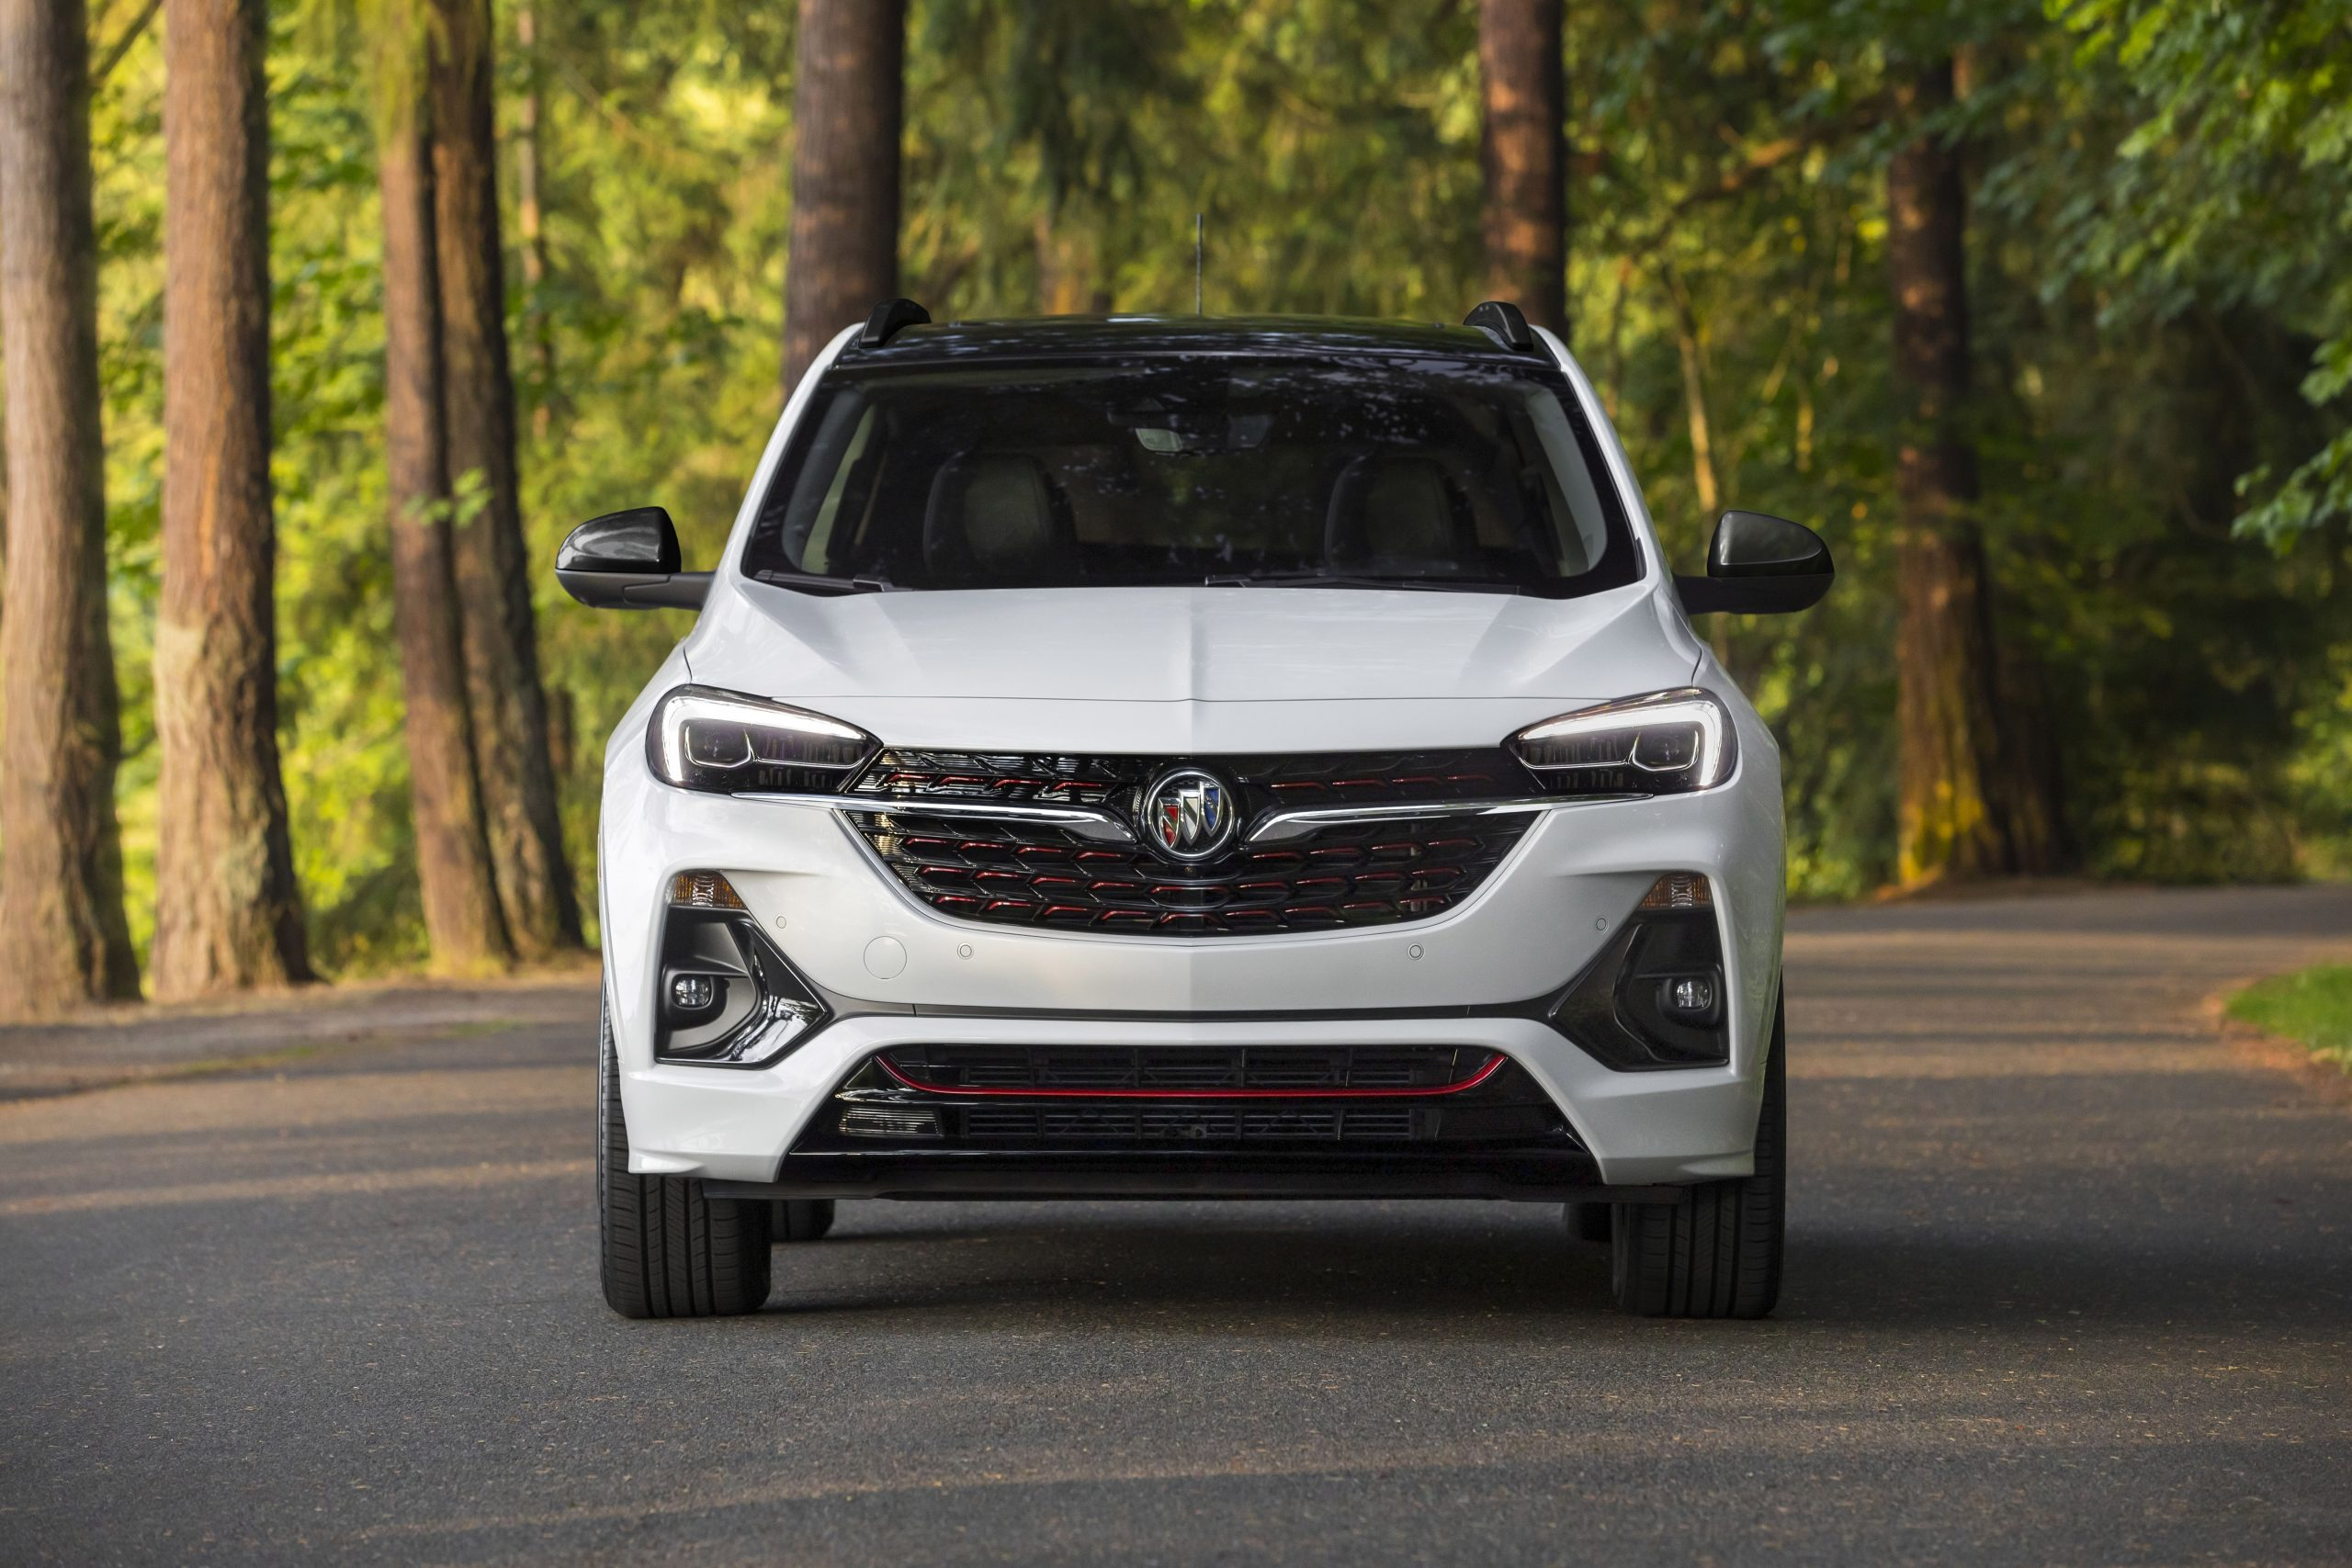 Buick Encore Gx Debuts In La | Gm Authority When Is The 2022 Buick Encore Gx Coming Out